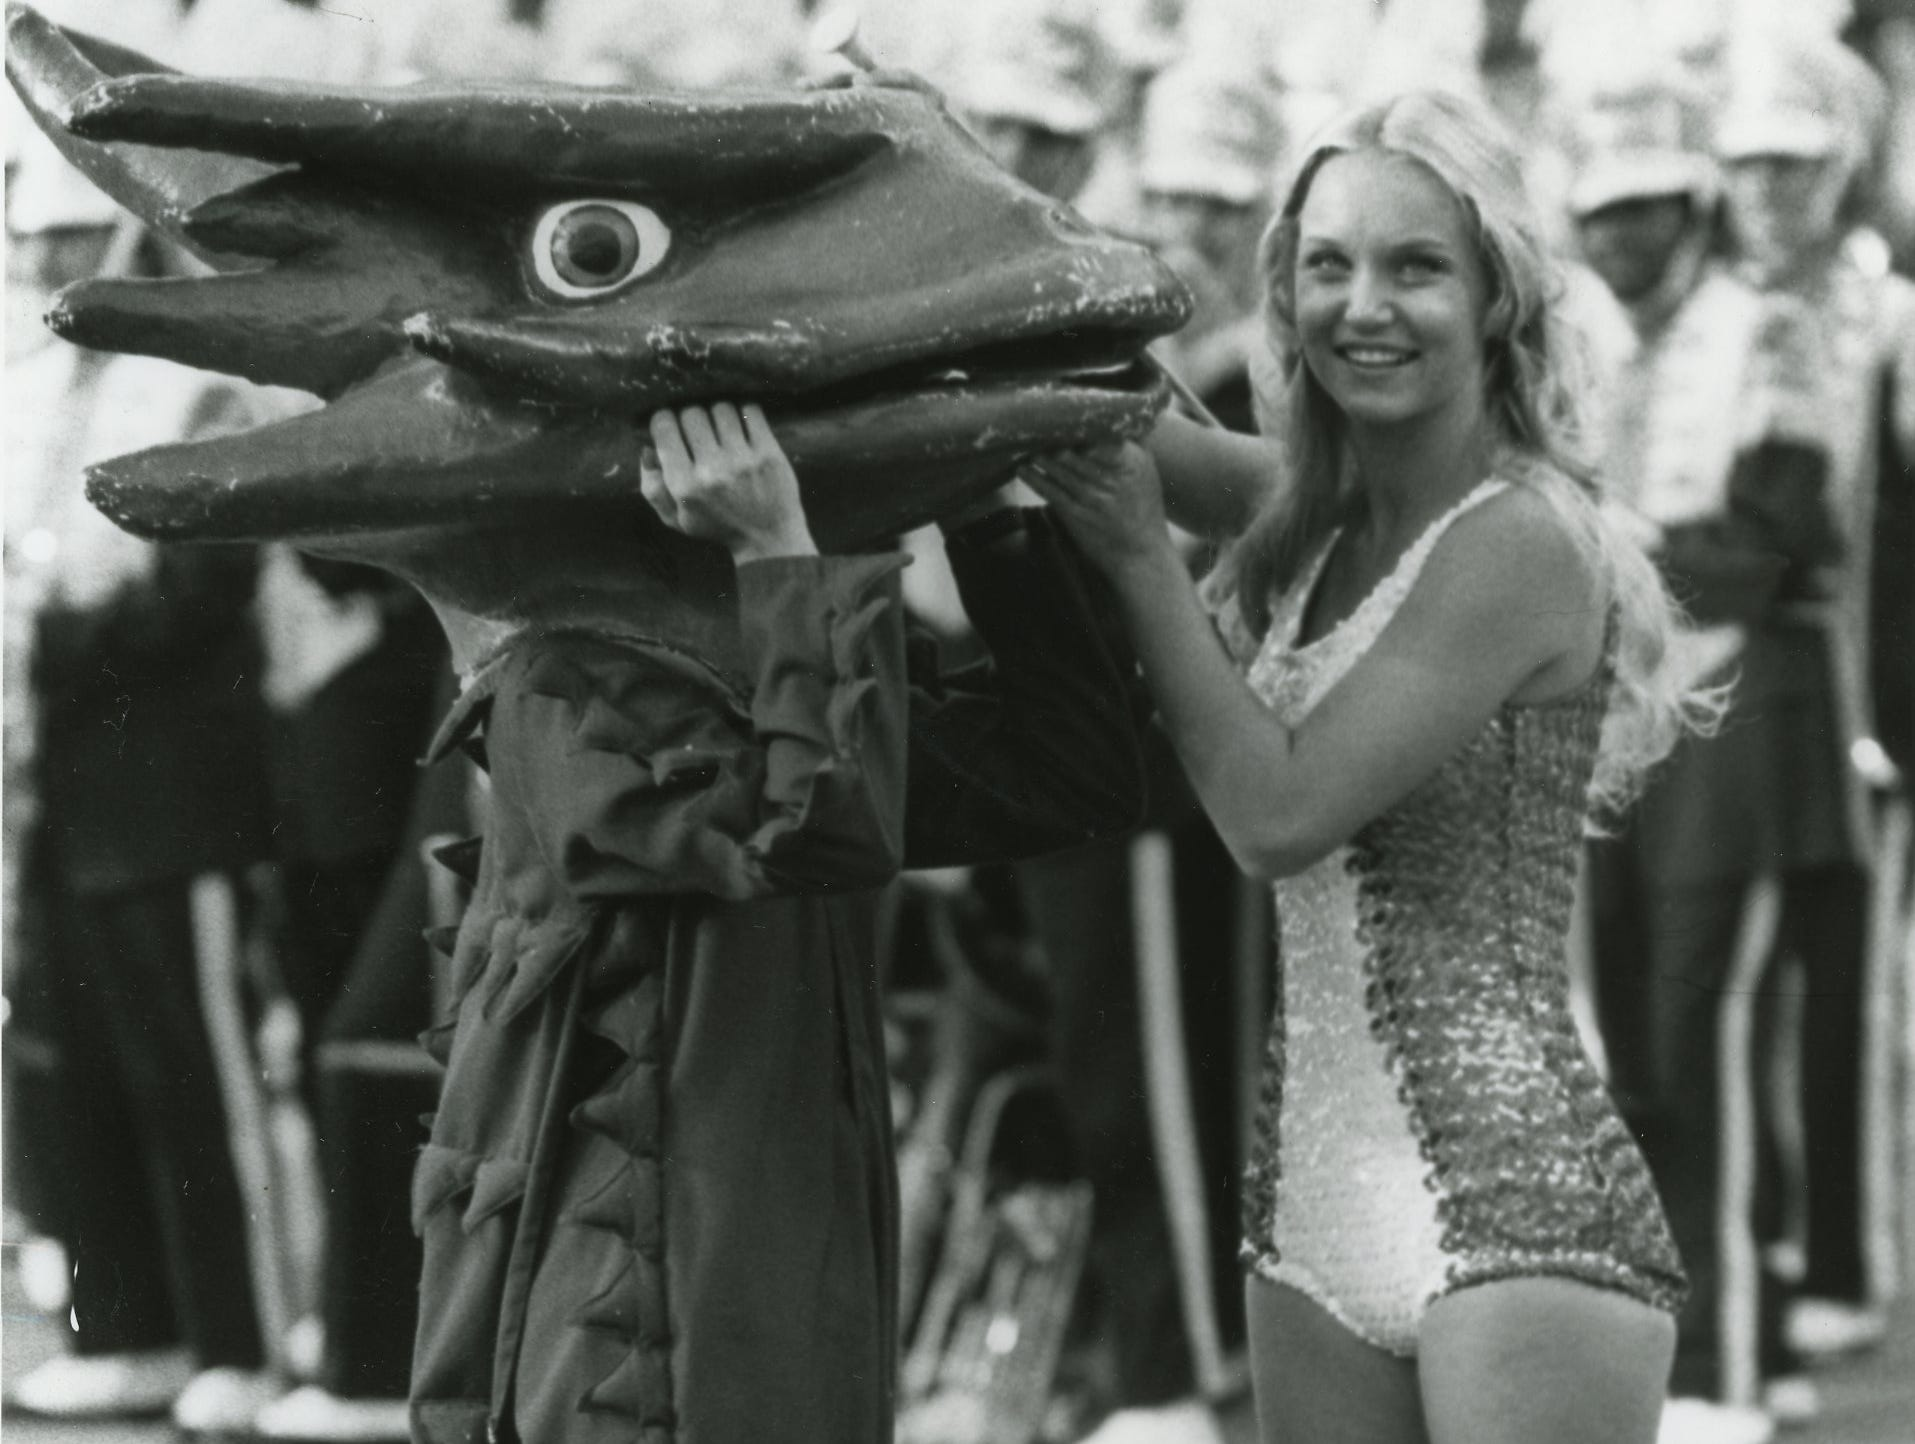 UT majorette Suzanna Timberlake, right, with the Horned Frog (Getchen Gazlay). September, 1976.